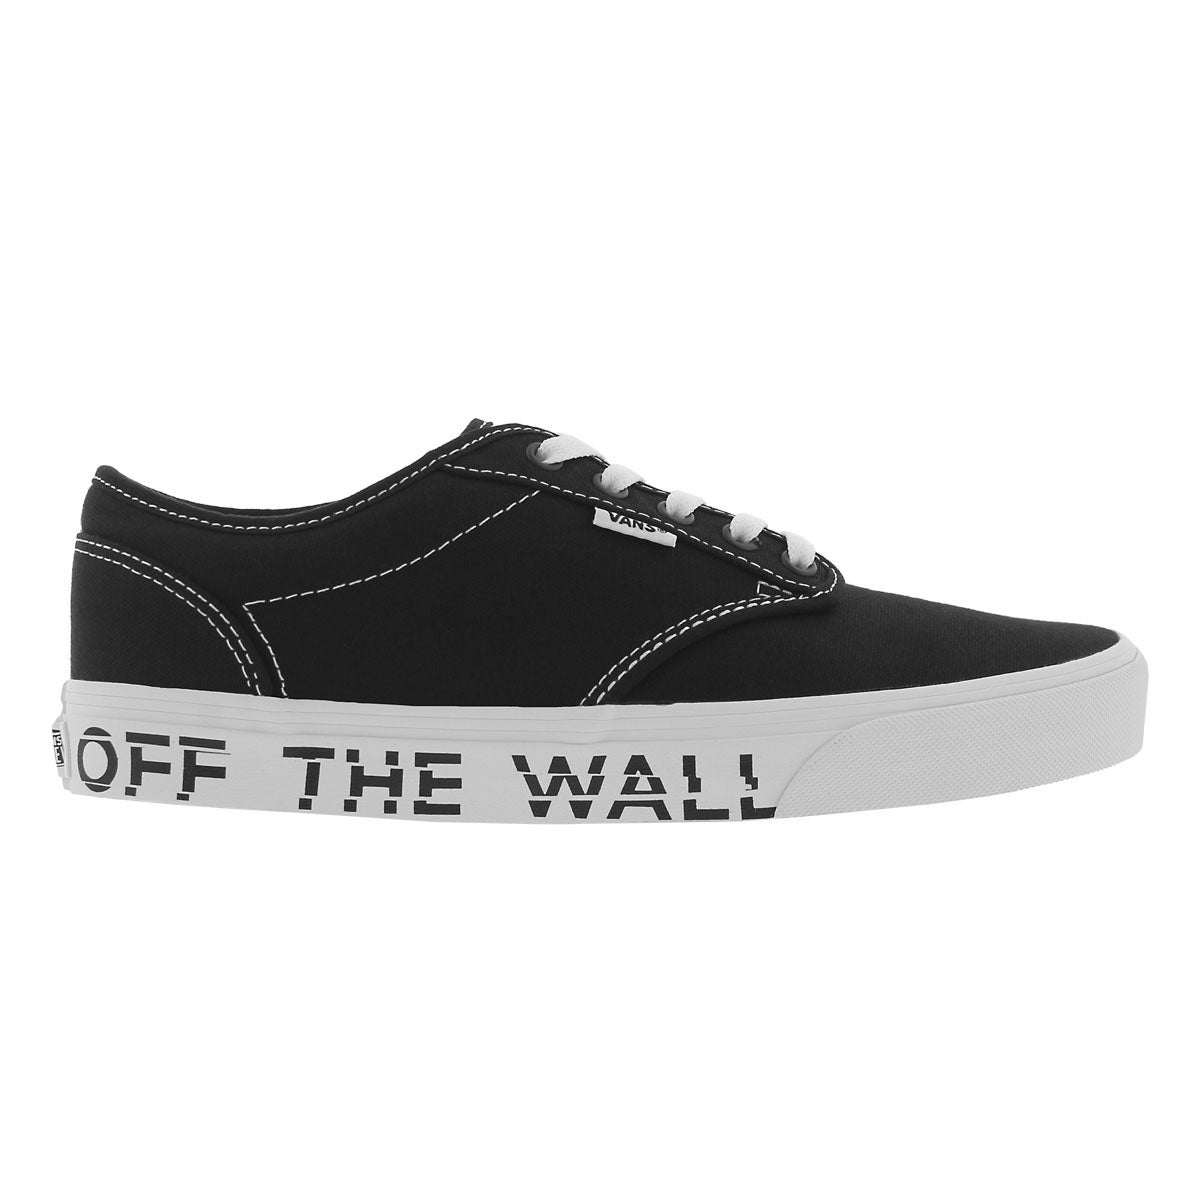 Mns Atwood printed fox blk/wht sneaker